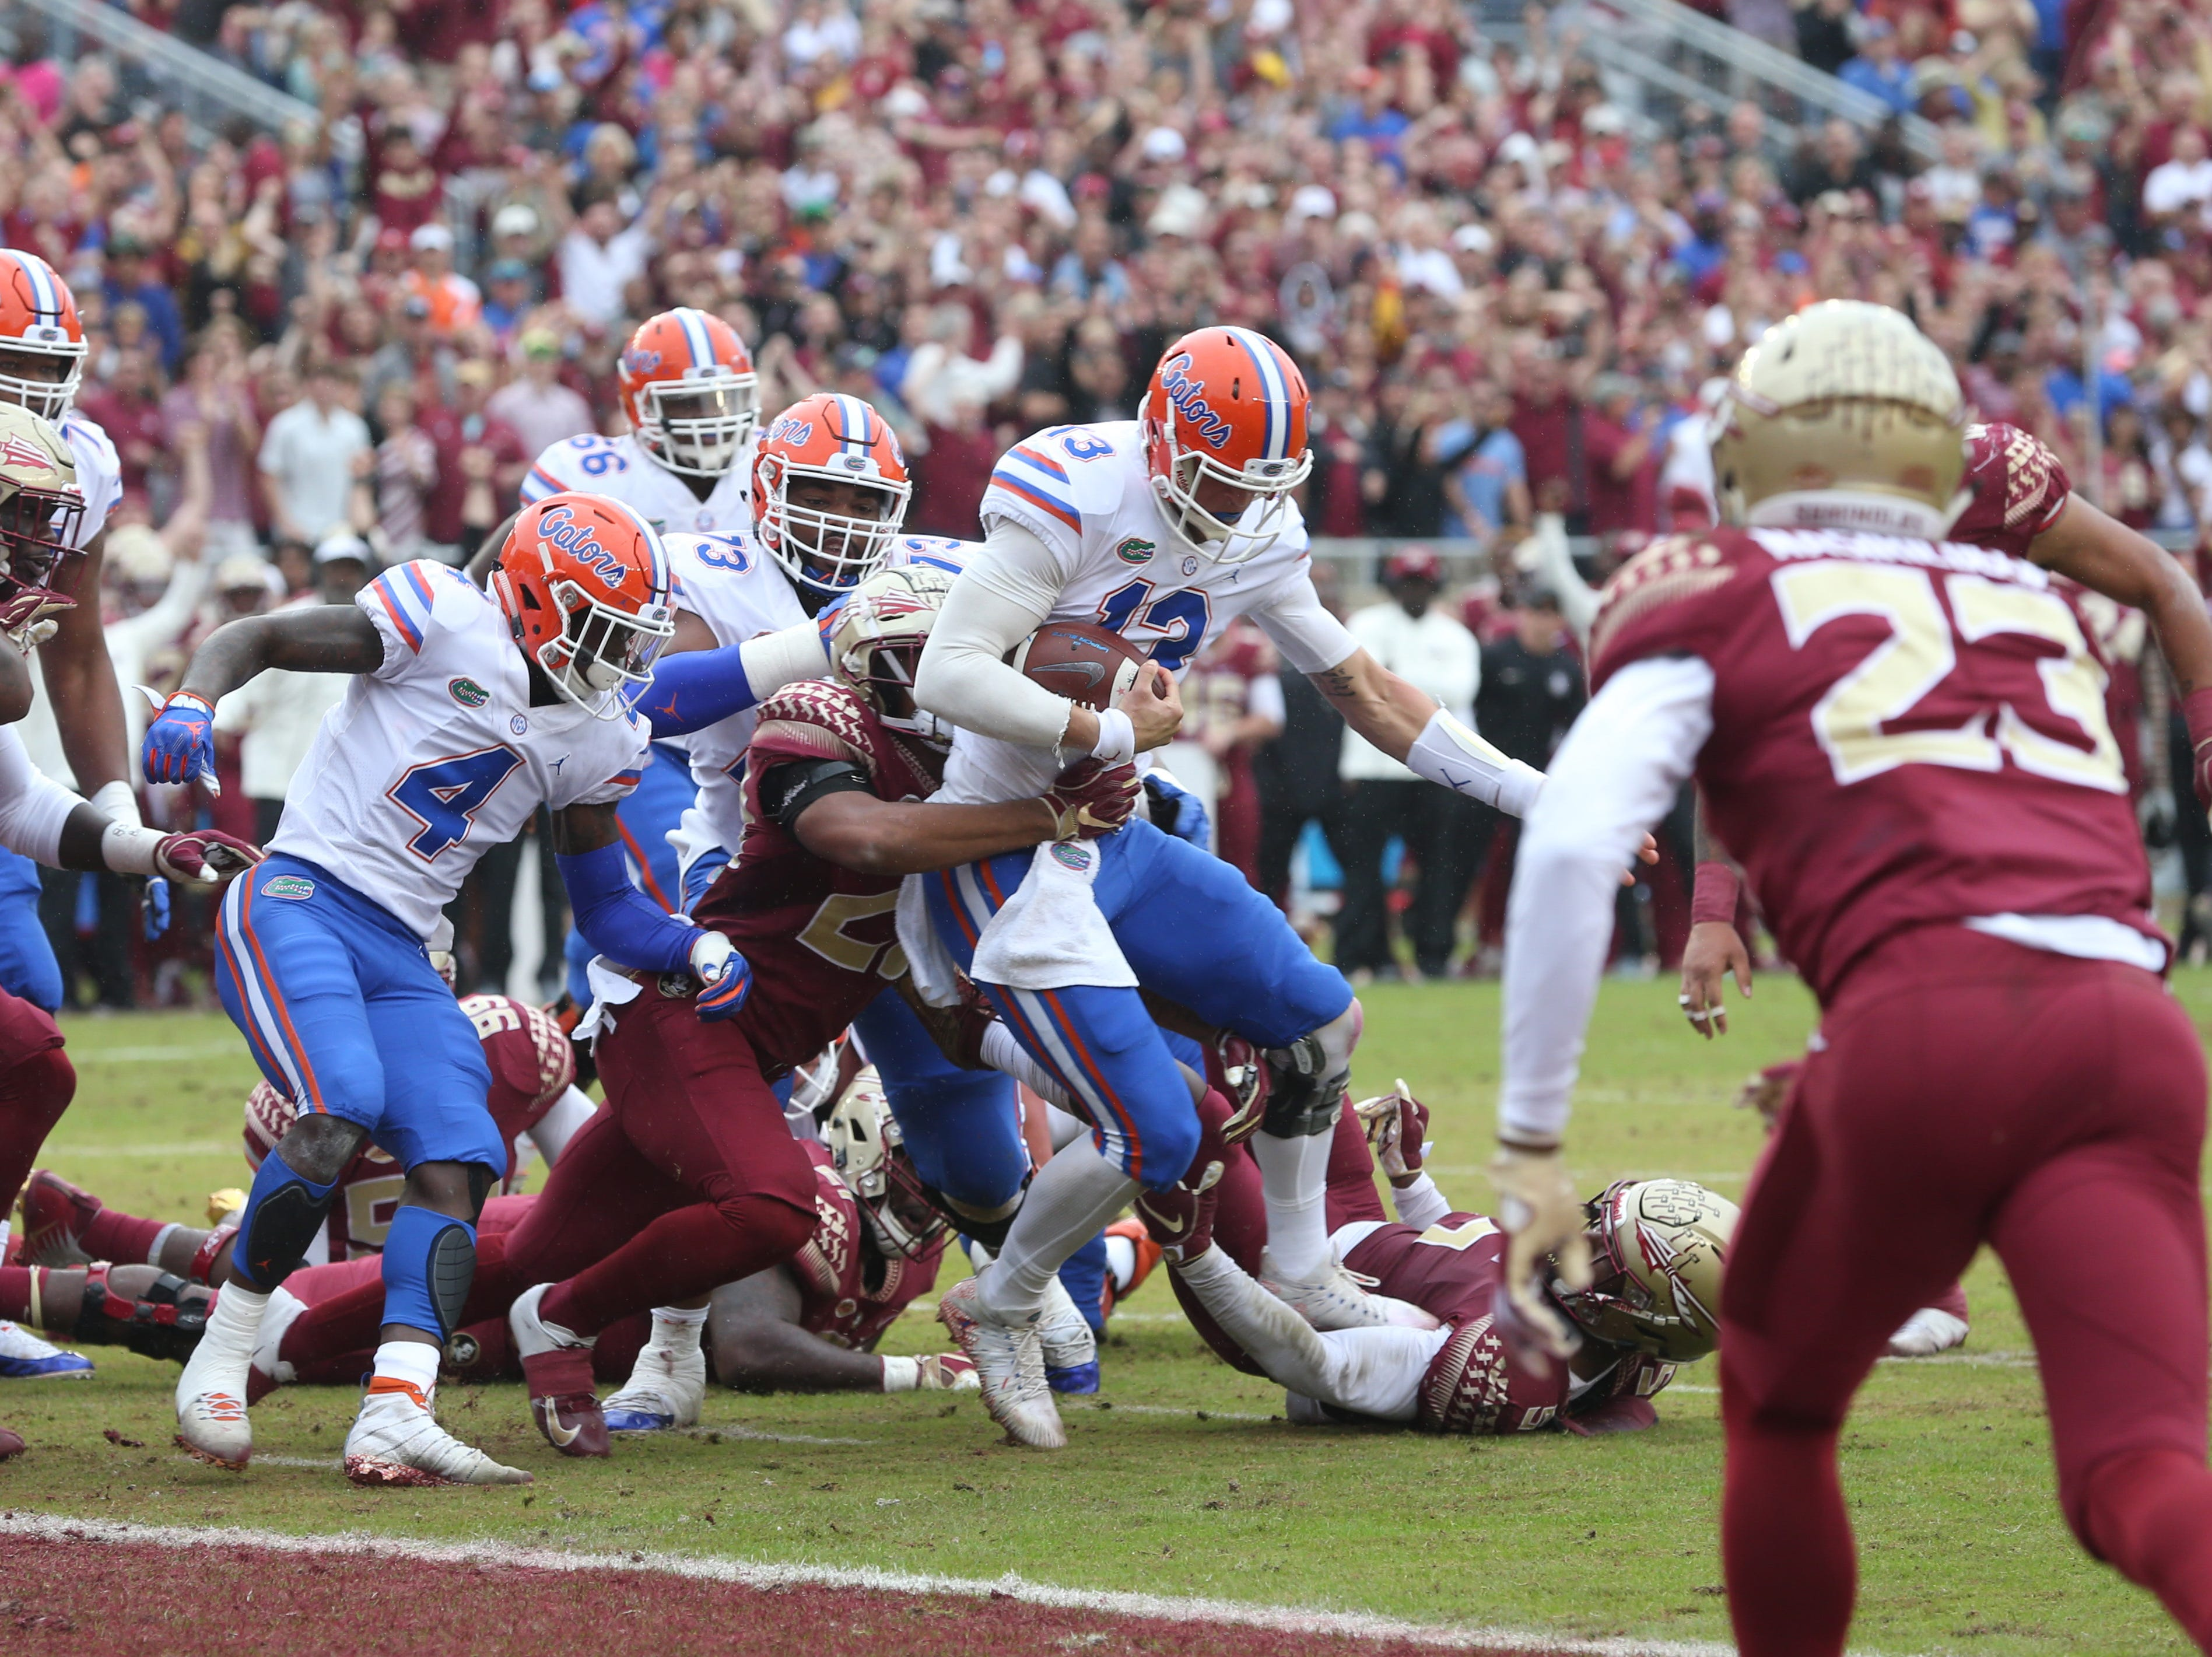 Florida Gators quarterback Feleipe Franks (13) fights off tackles as he tries to run for a touchdown as the Florida State Seminoles take on their rival the Florida Gators in college football at Doak S. Campbell Stadium, Saturday, Nov. 24, 2018.